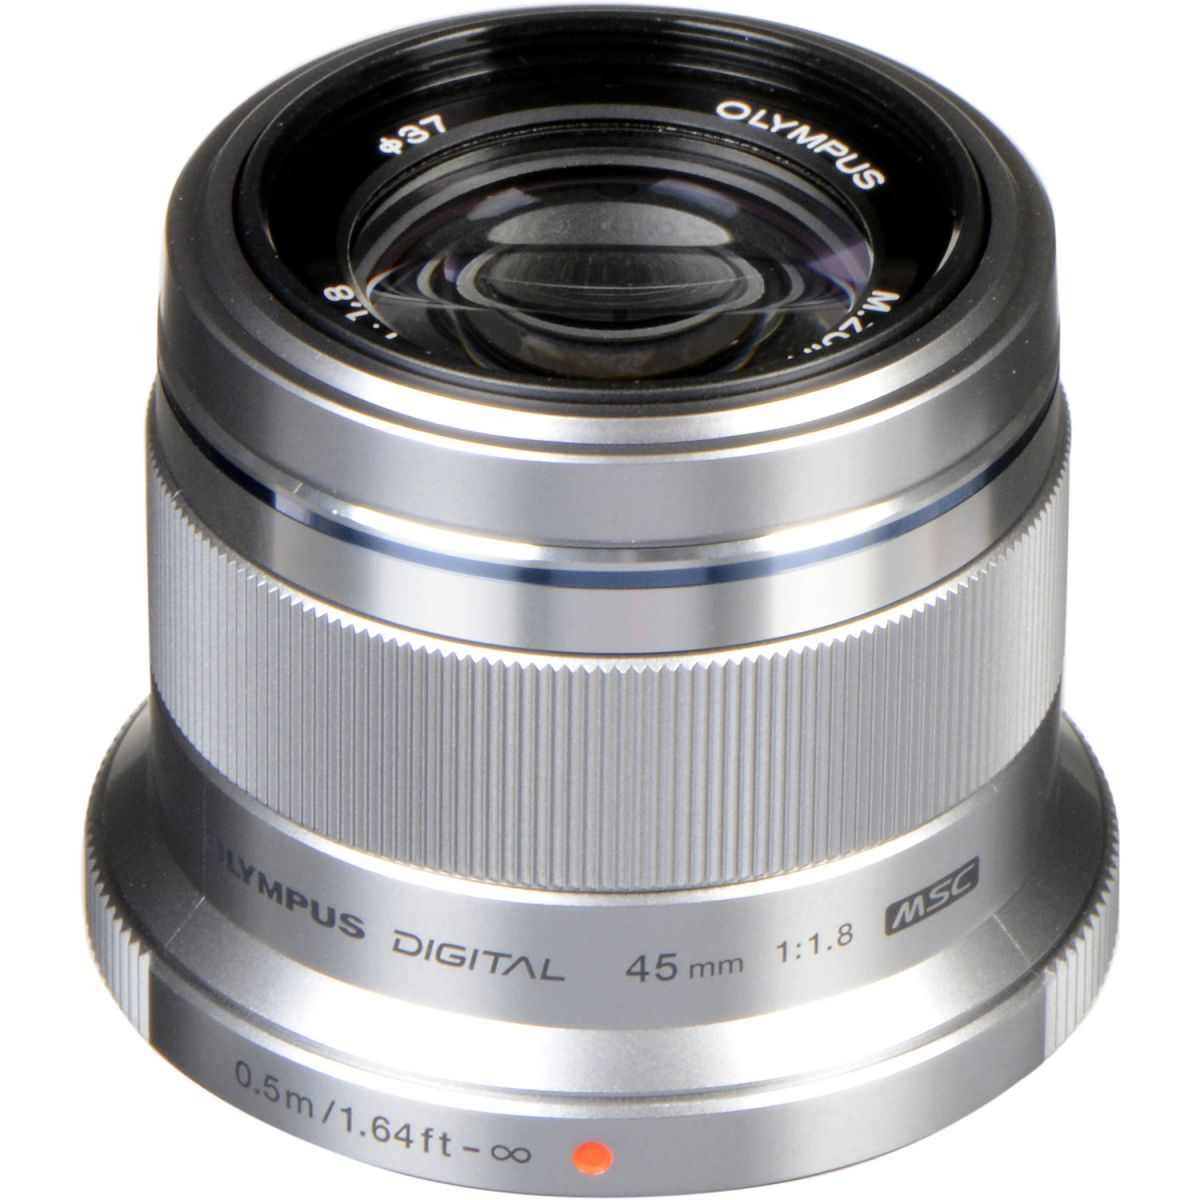 The best Micro Four Thirds lenses for your Olympus or Panasonic